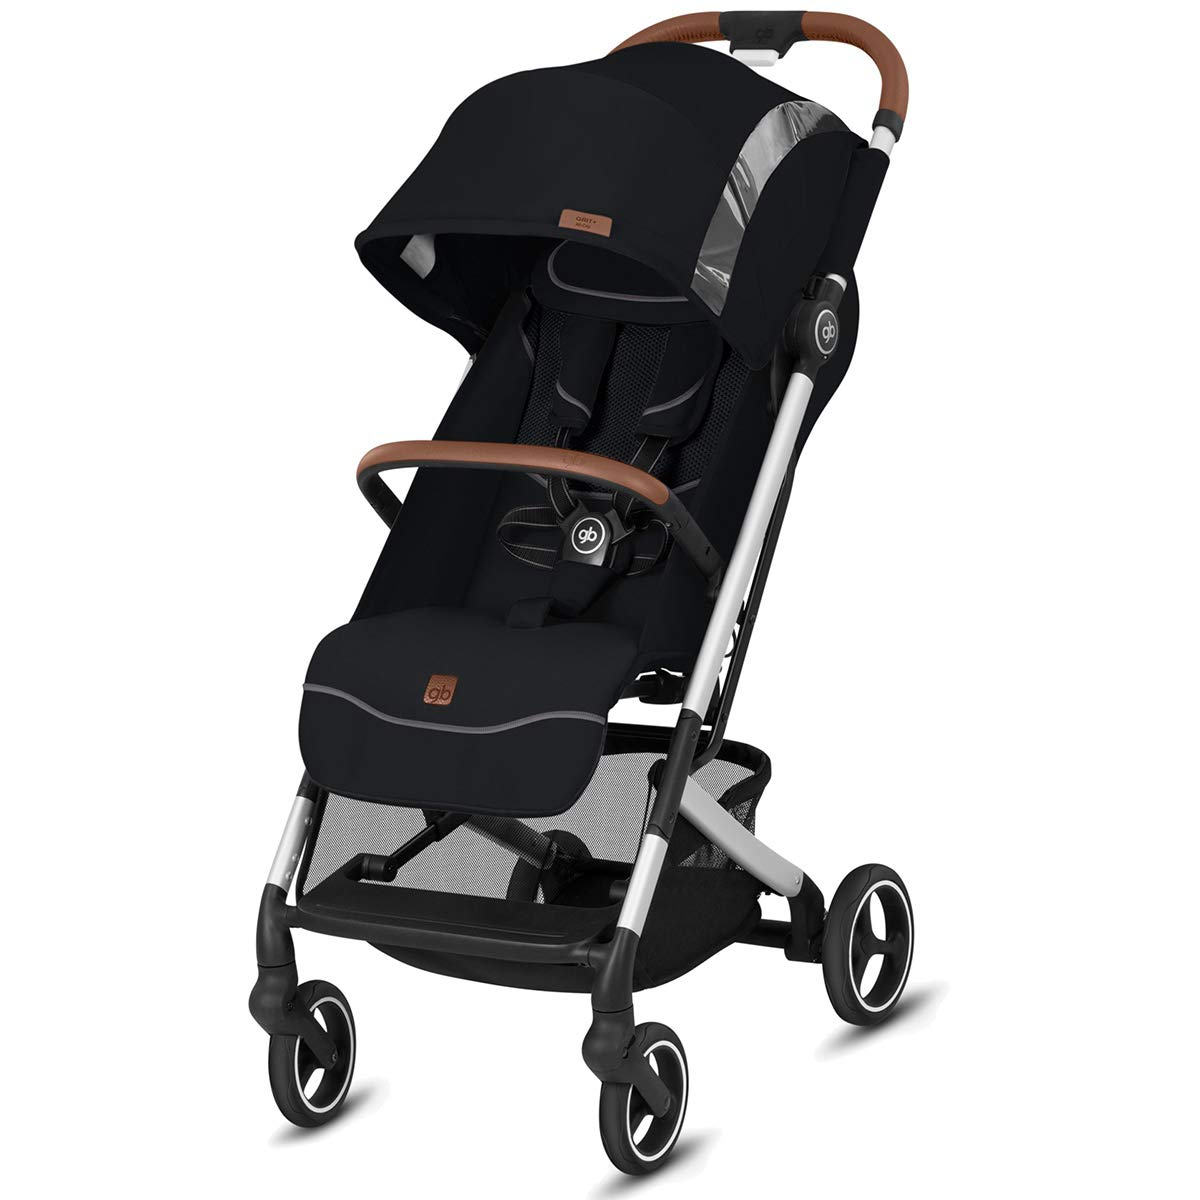 GB 2019 QBIT+ All City''Velvet Black'' Fashion Edition - from Birth up to 17 kg (Approx. 4 Years) - GoodBaby QBIT Plus All-City